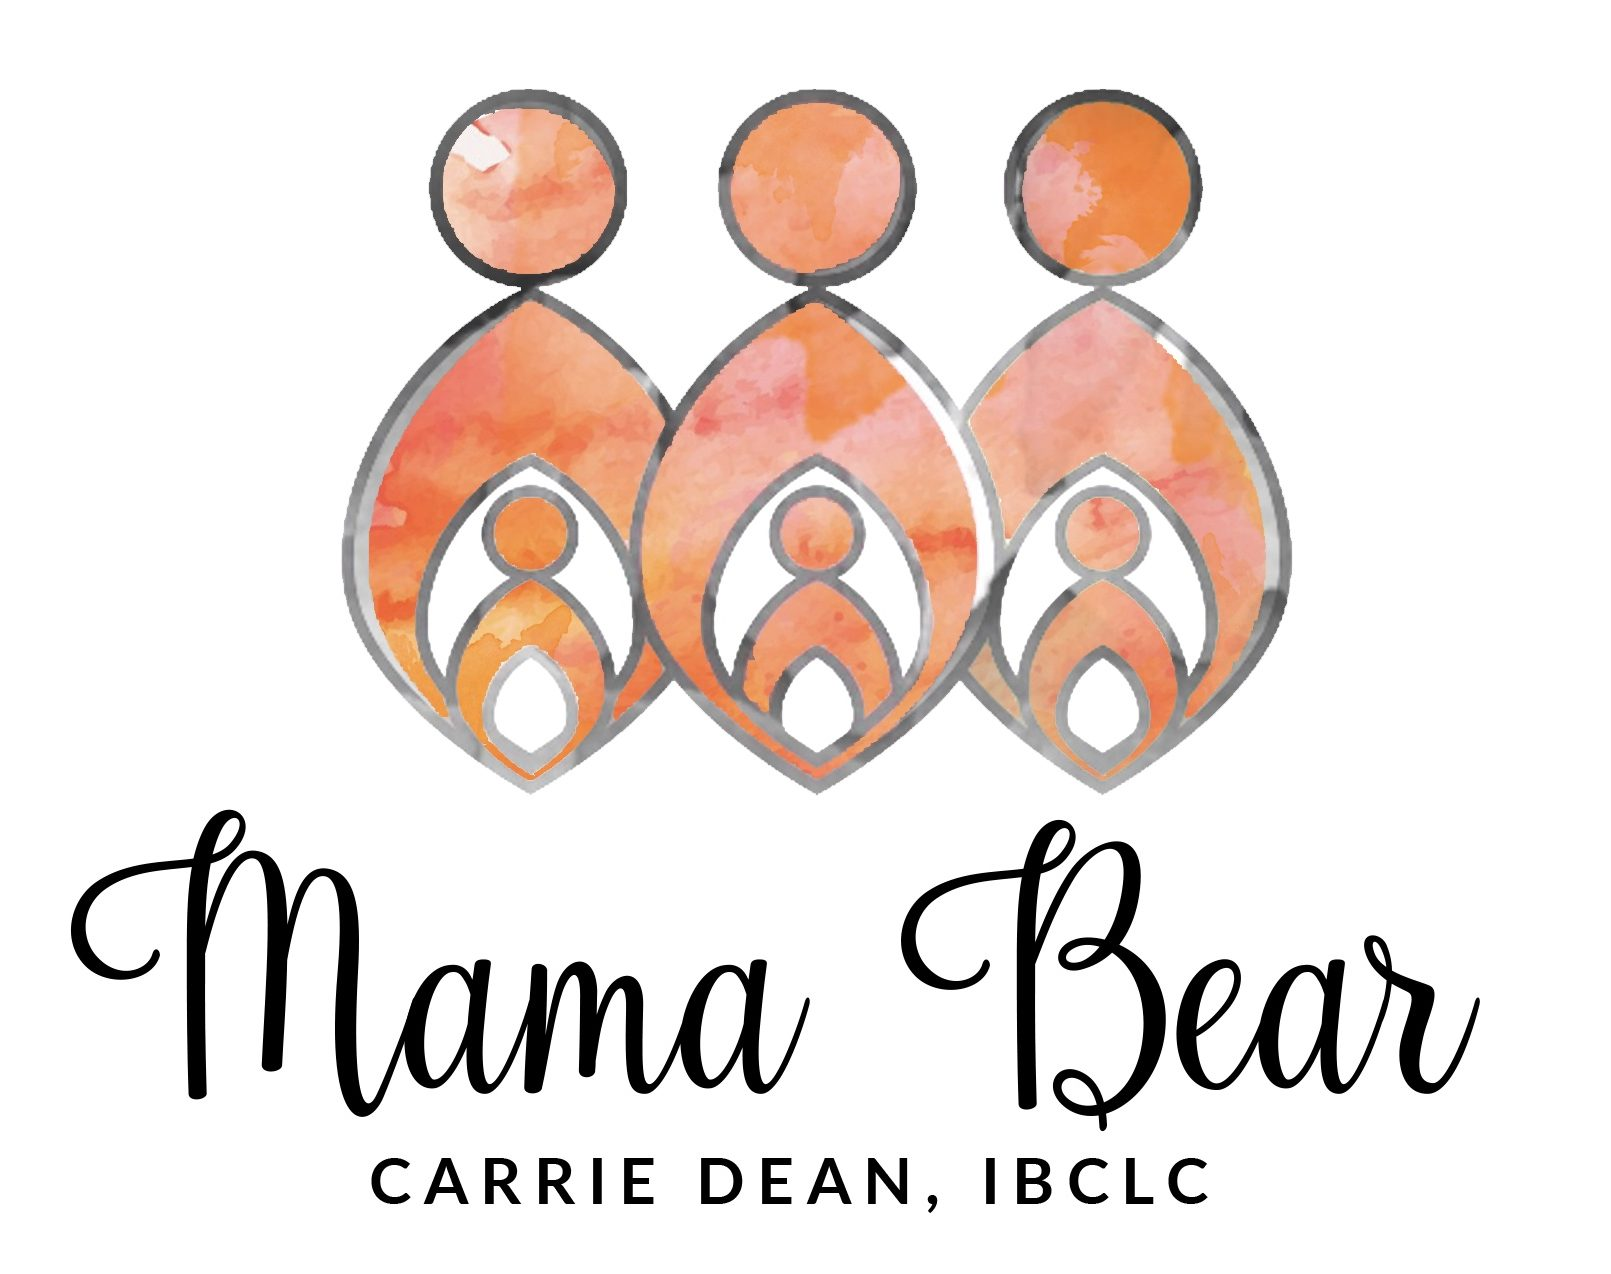 Carrie Dean, International Board Certified Lactation Consultant